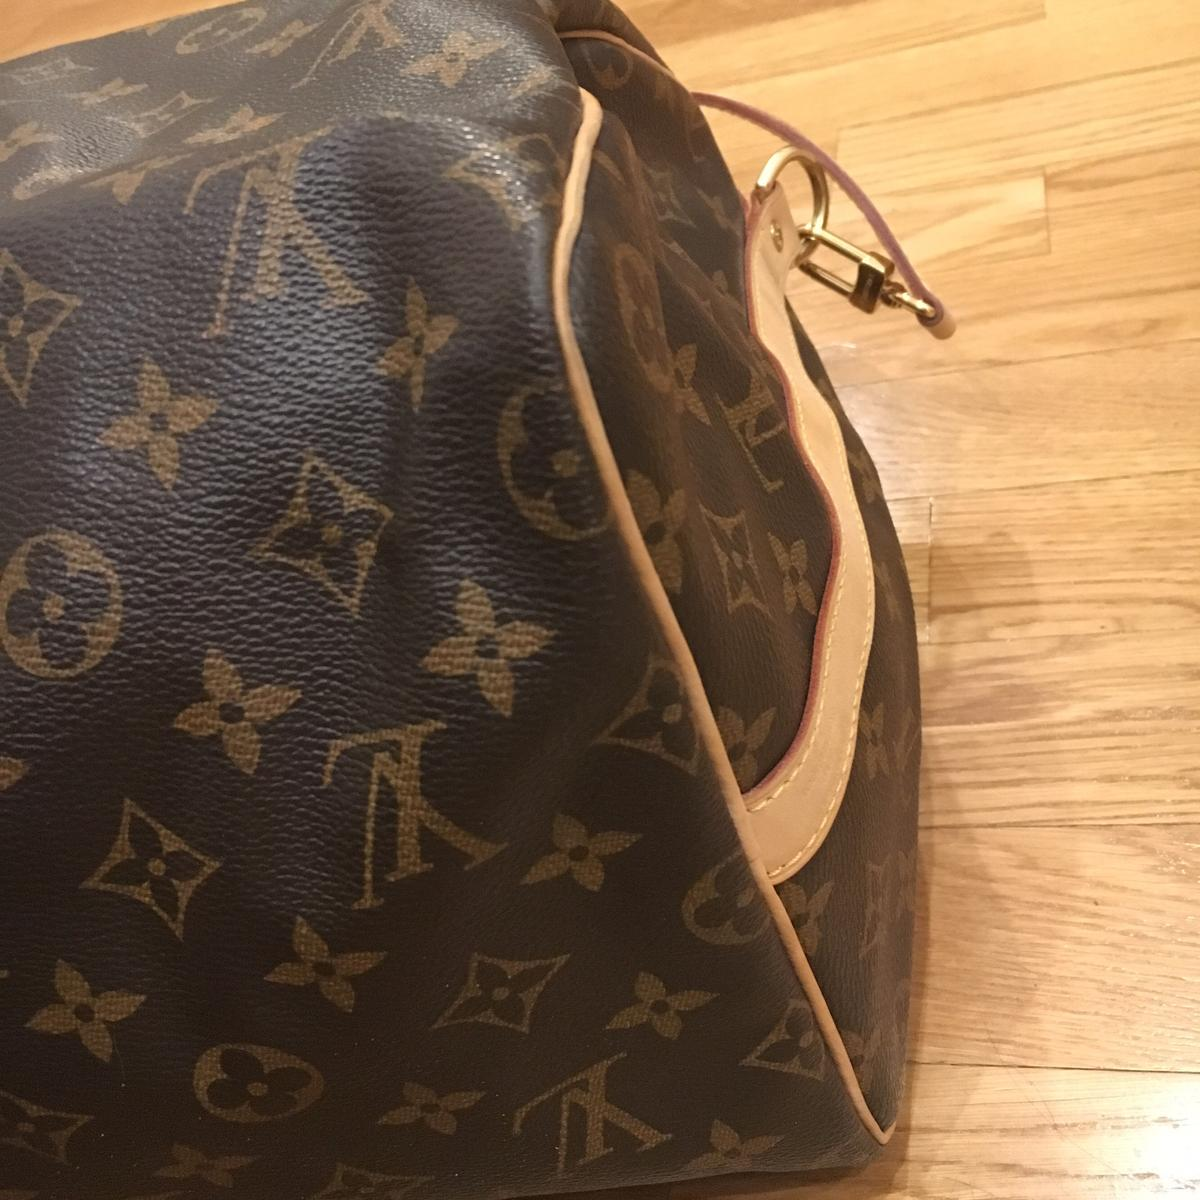 1b16c8e286 Bauletto Louis Vuitton Speedy Bandouliere 40 in 20149 Milano for €800.00  for sale - Shpock